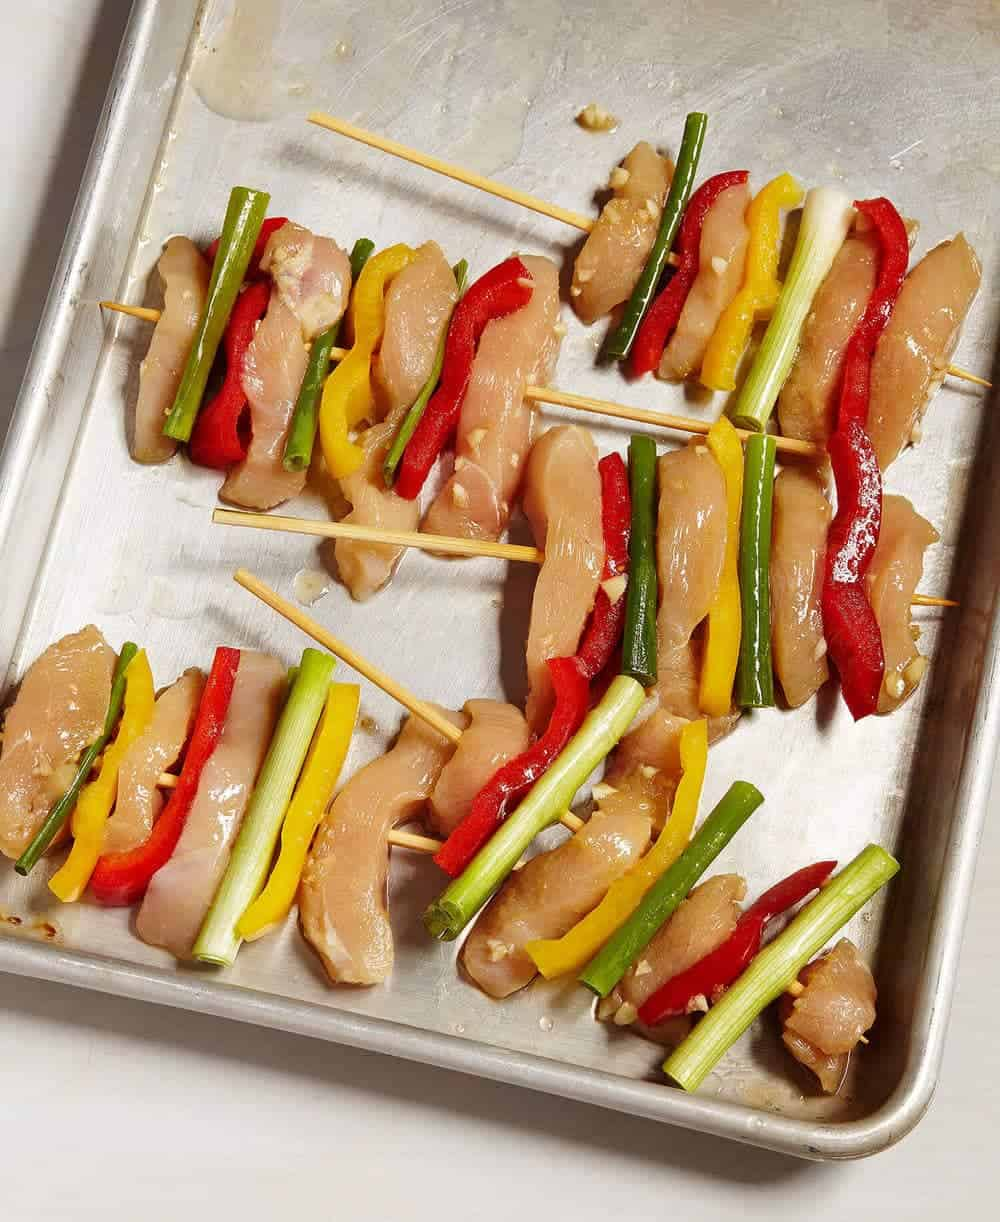 Getting the Korean Grilled Chicken and Veggie Skewers prepped - this is so easy!